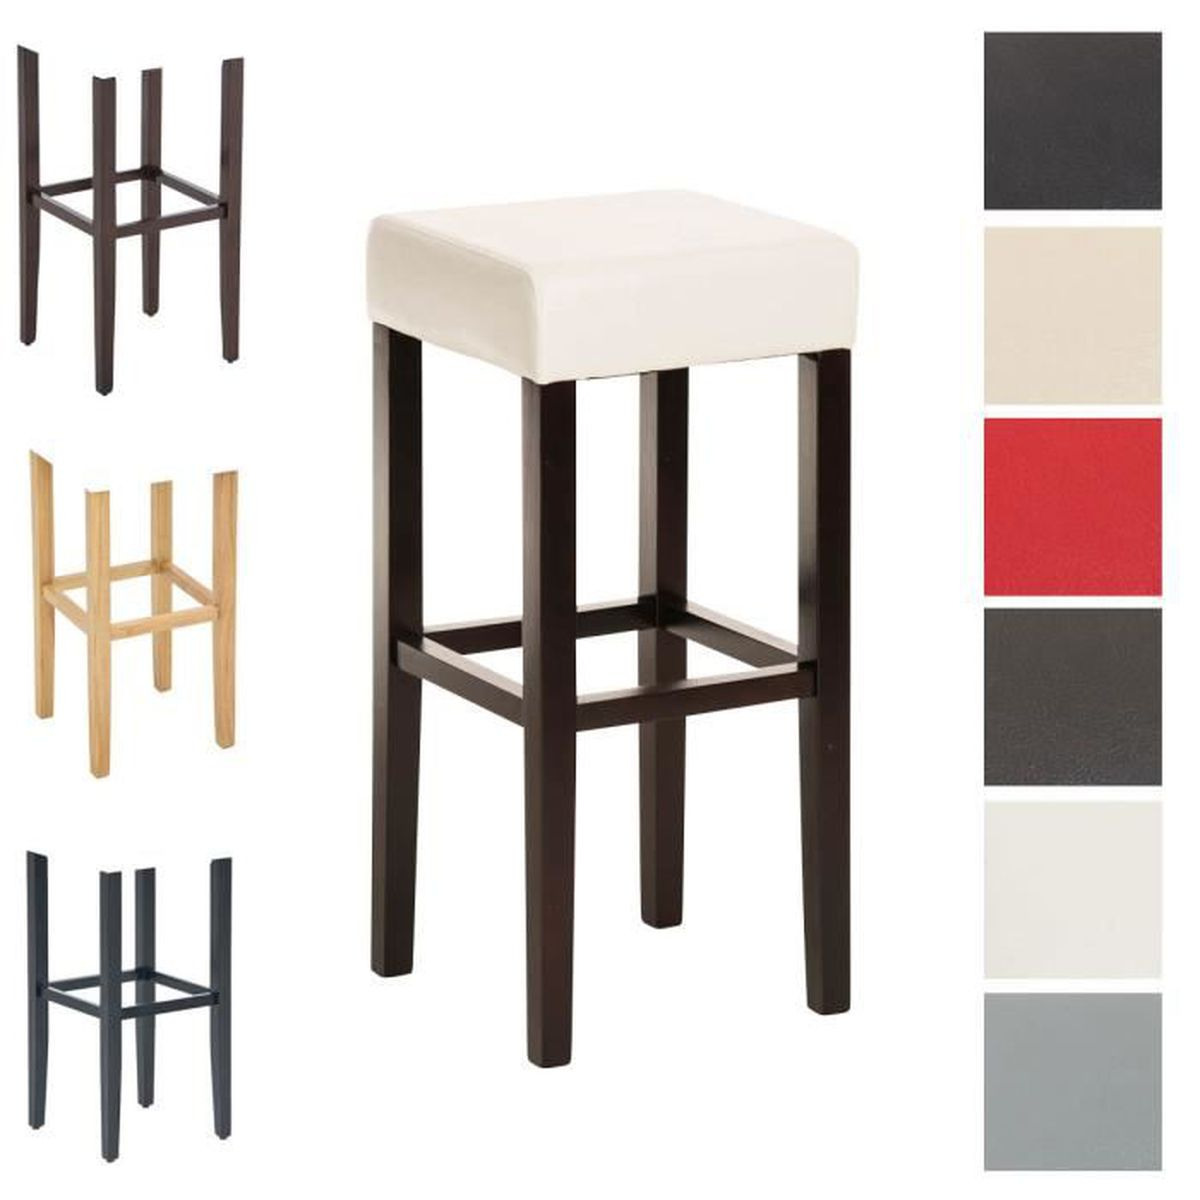 tabouret de bar assise 80 cm achat vente tabouret de bar assise 80 cm pas cher cdiscount. Black Bedroom Furniture Sets. Home Design Ideas